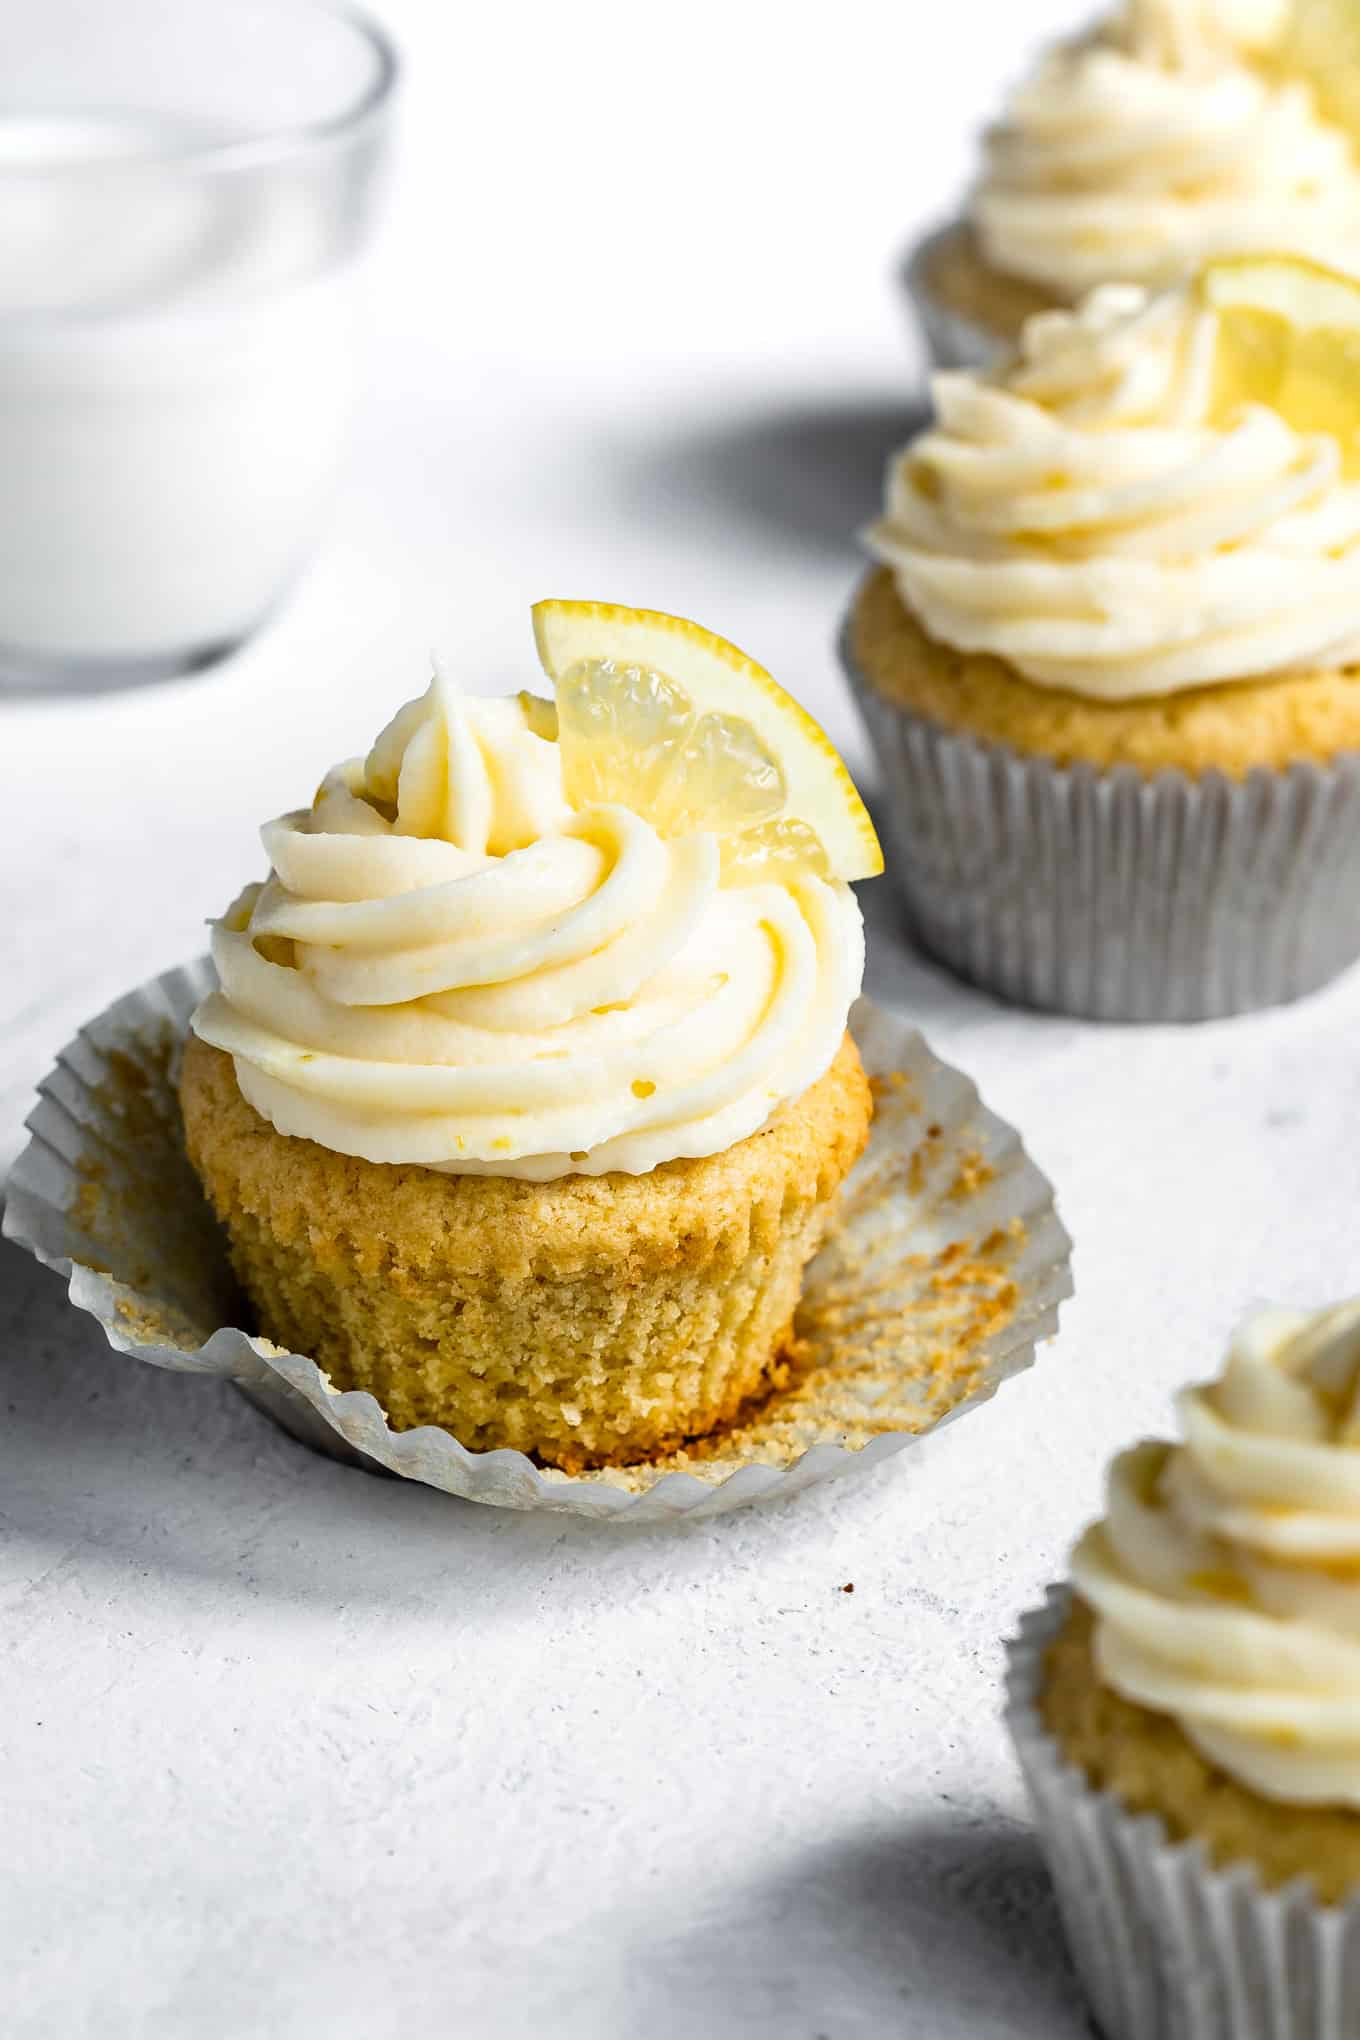 Lemon Frosting for Cupcakes